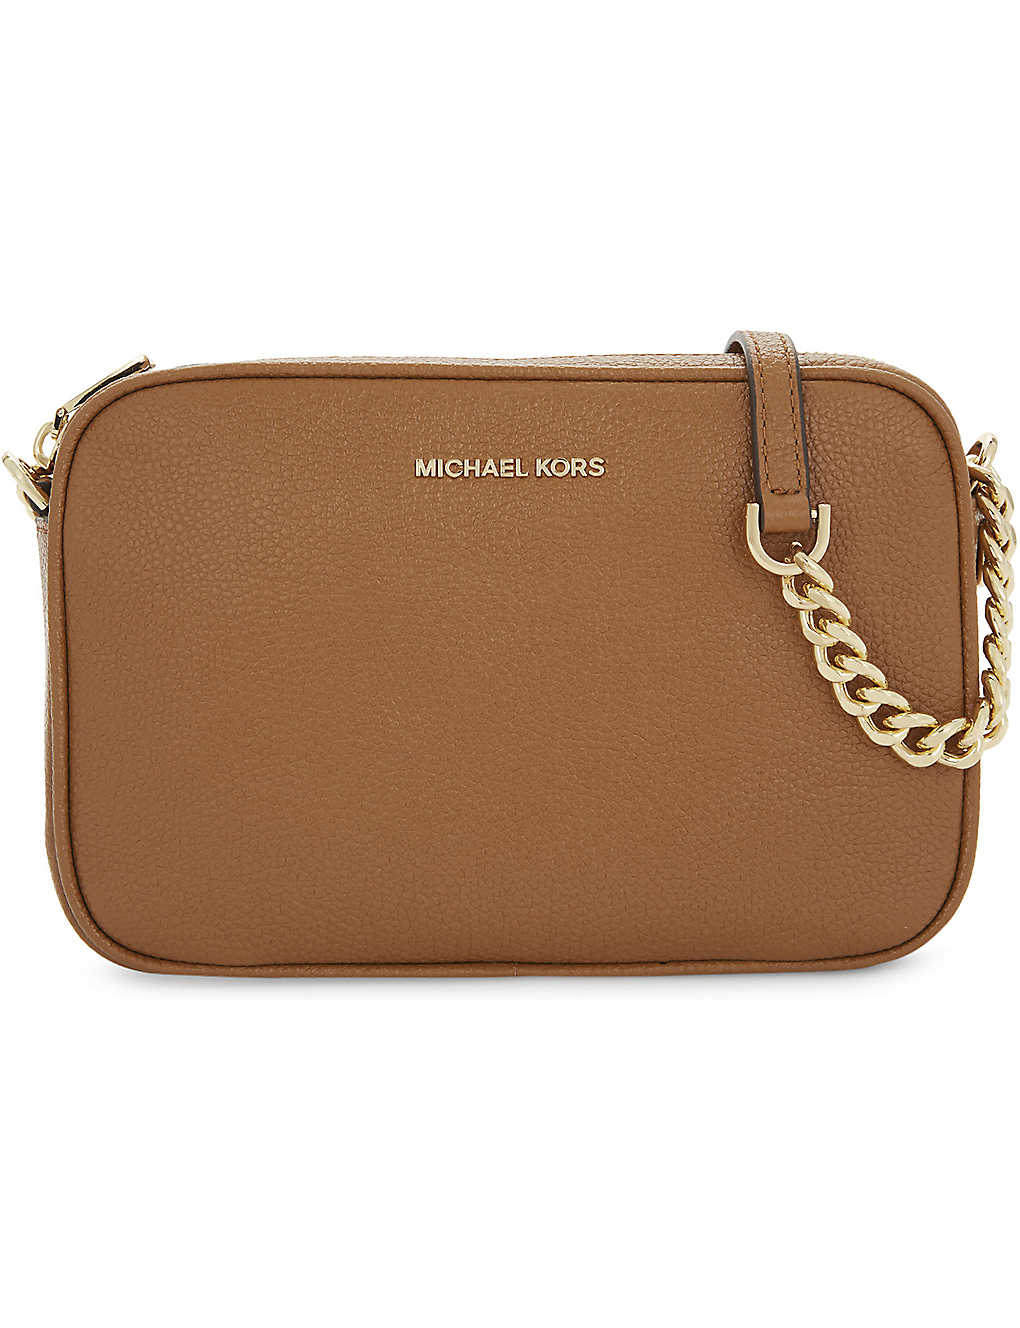 c17bd587db27 MICHAEL MICHAEL KORS - Ginny leather cross-body bag | Selfridges.com